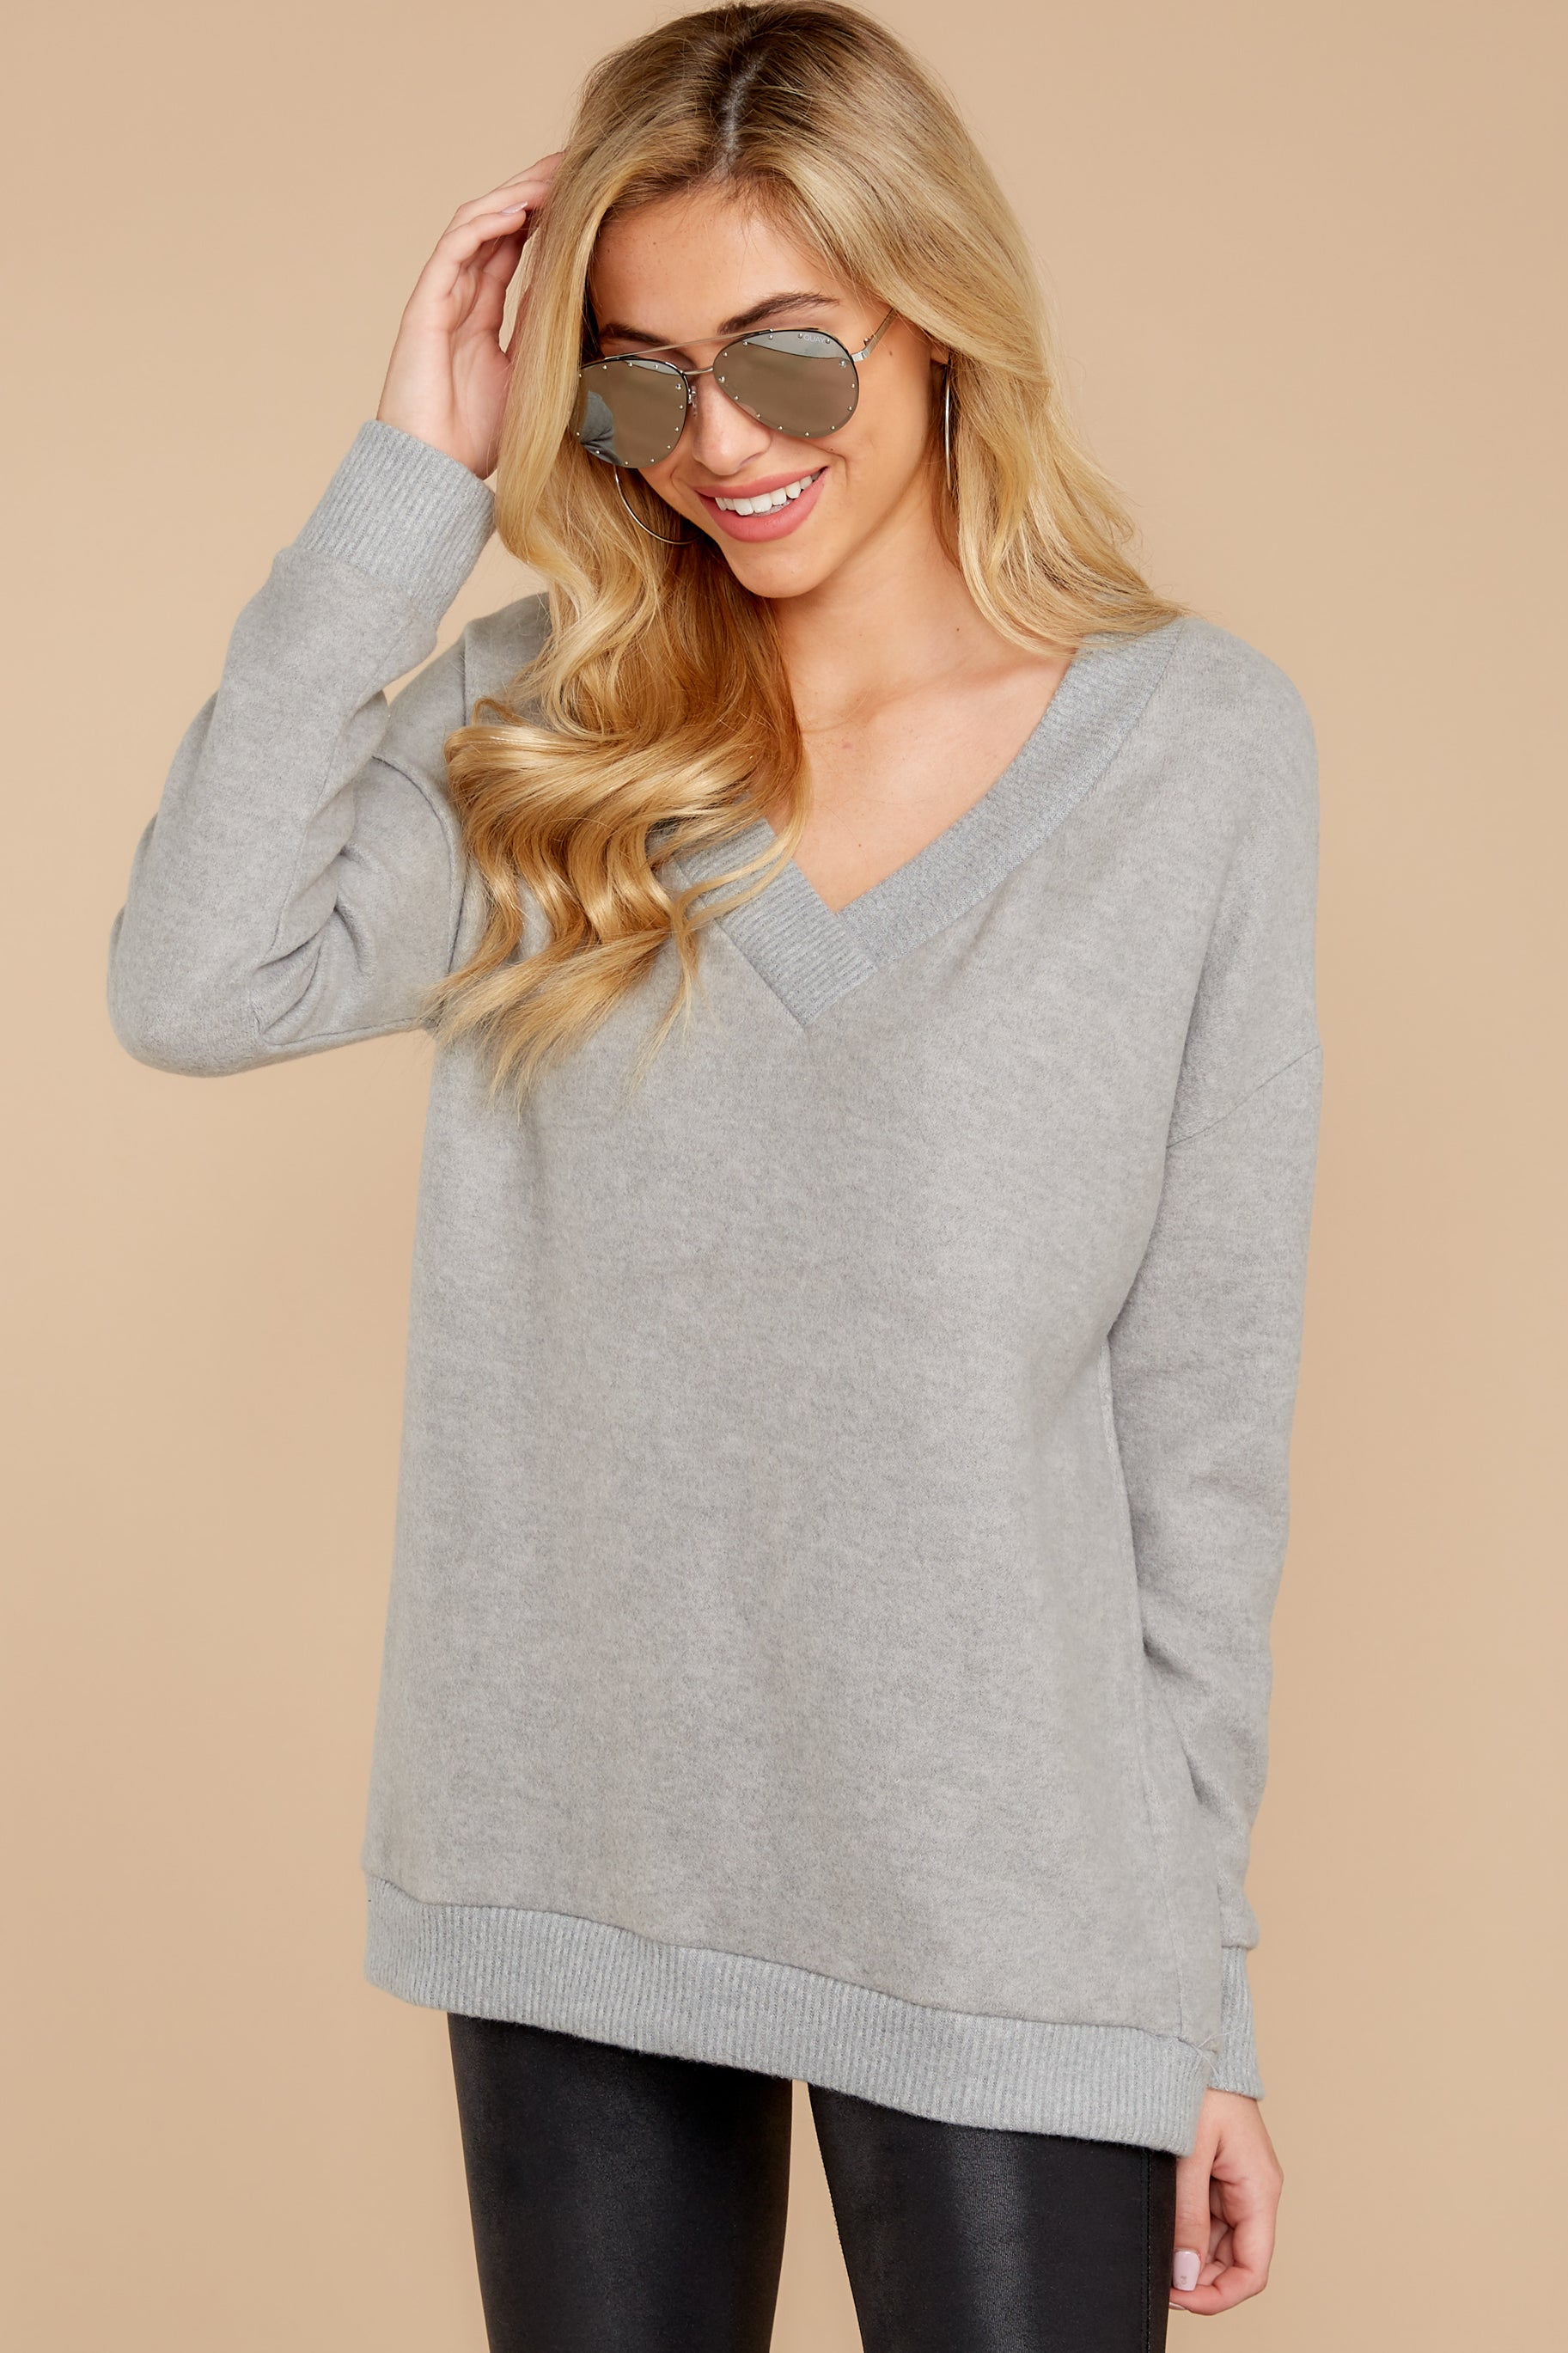 5 Soon Enough Heather Grey Sweater at reddressboutique.com